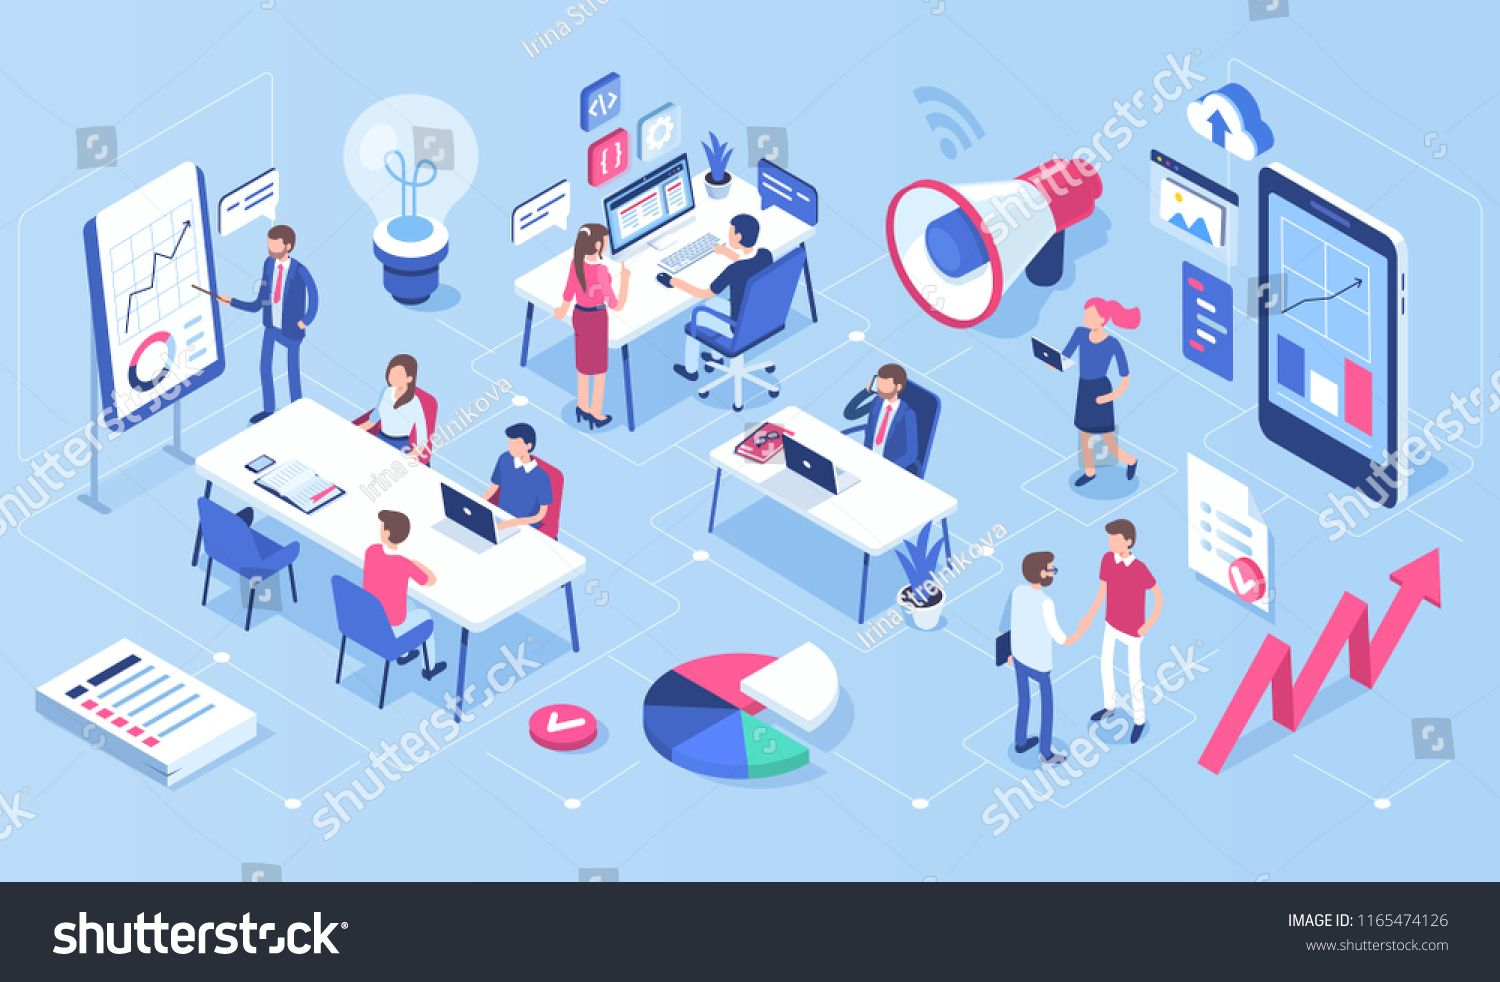 People In Open Space Office Concept Design Can Use For Web Banner